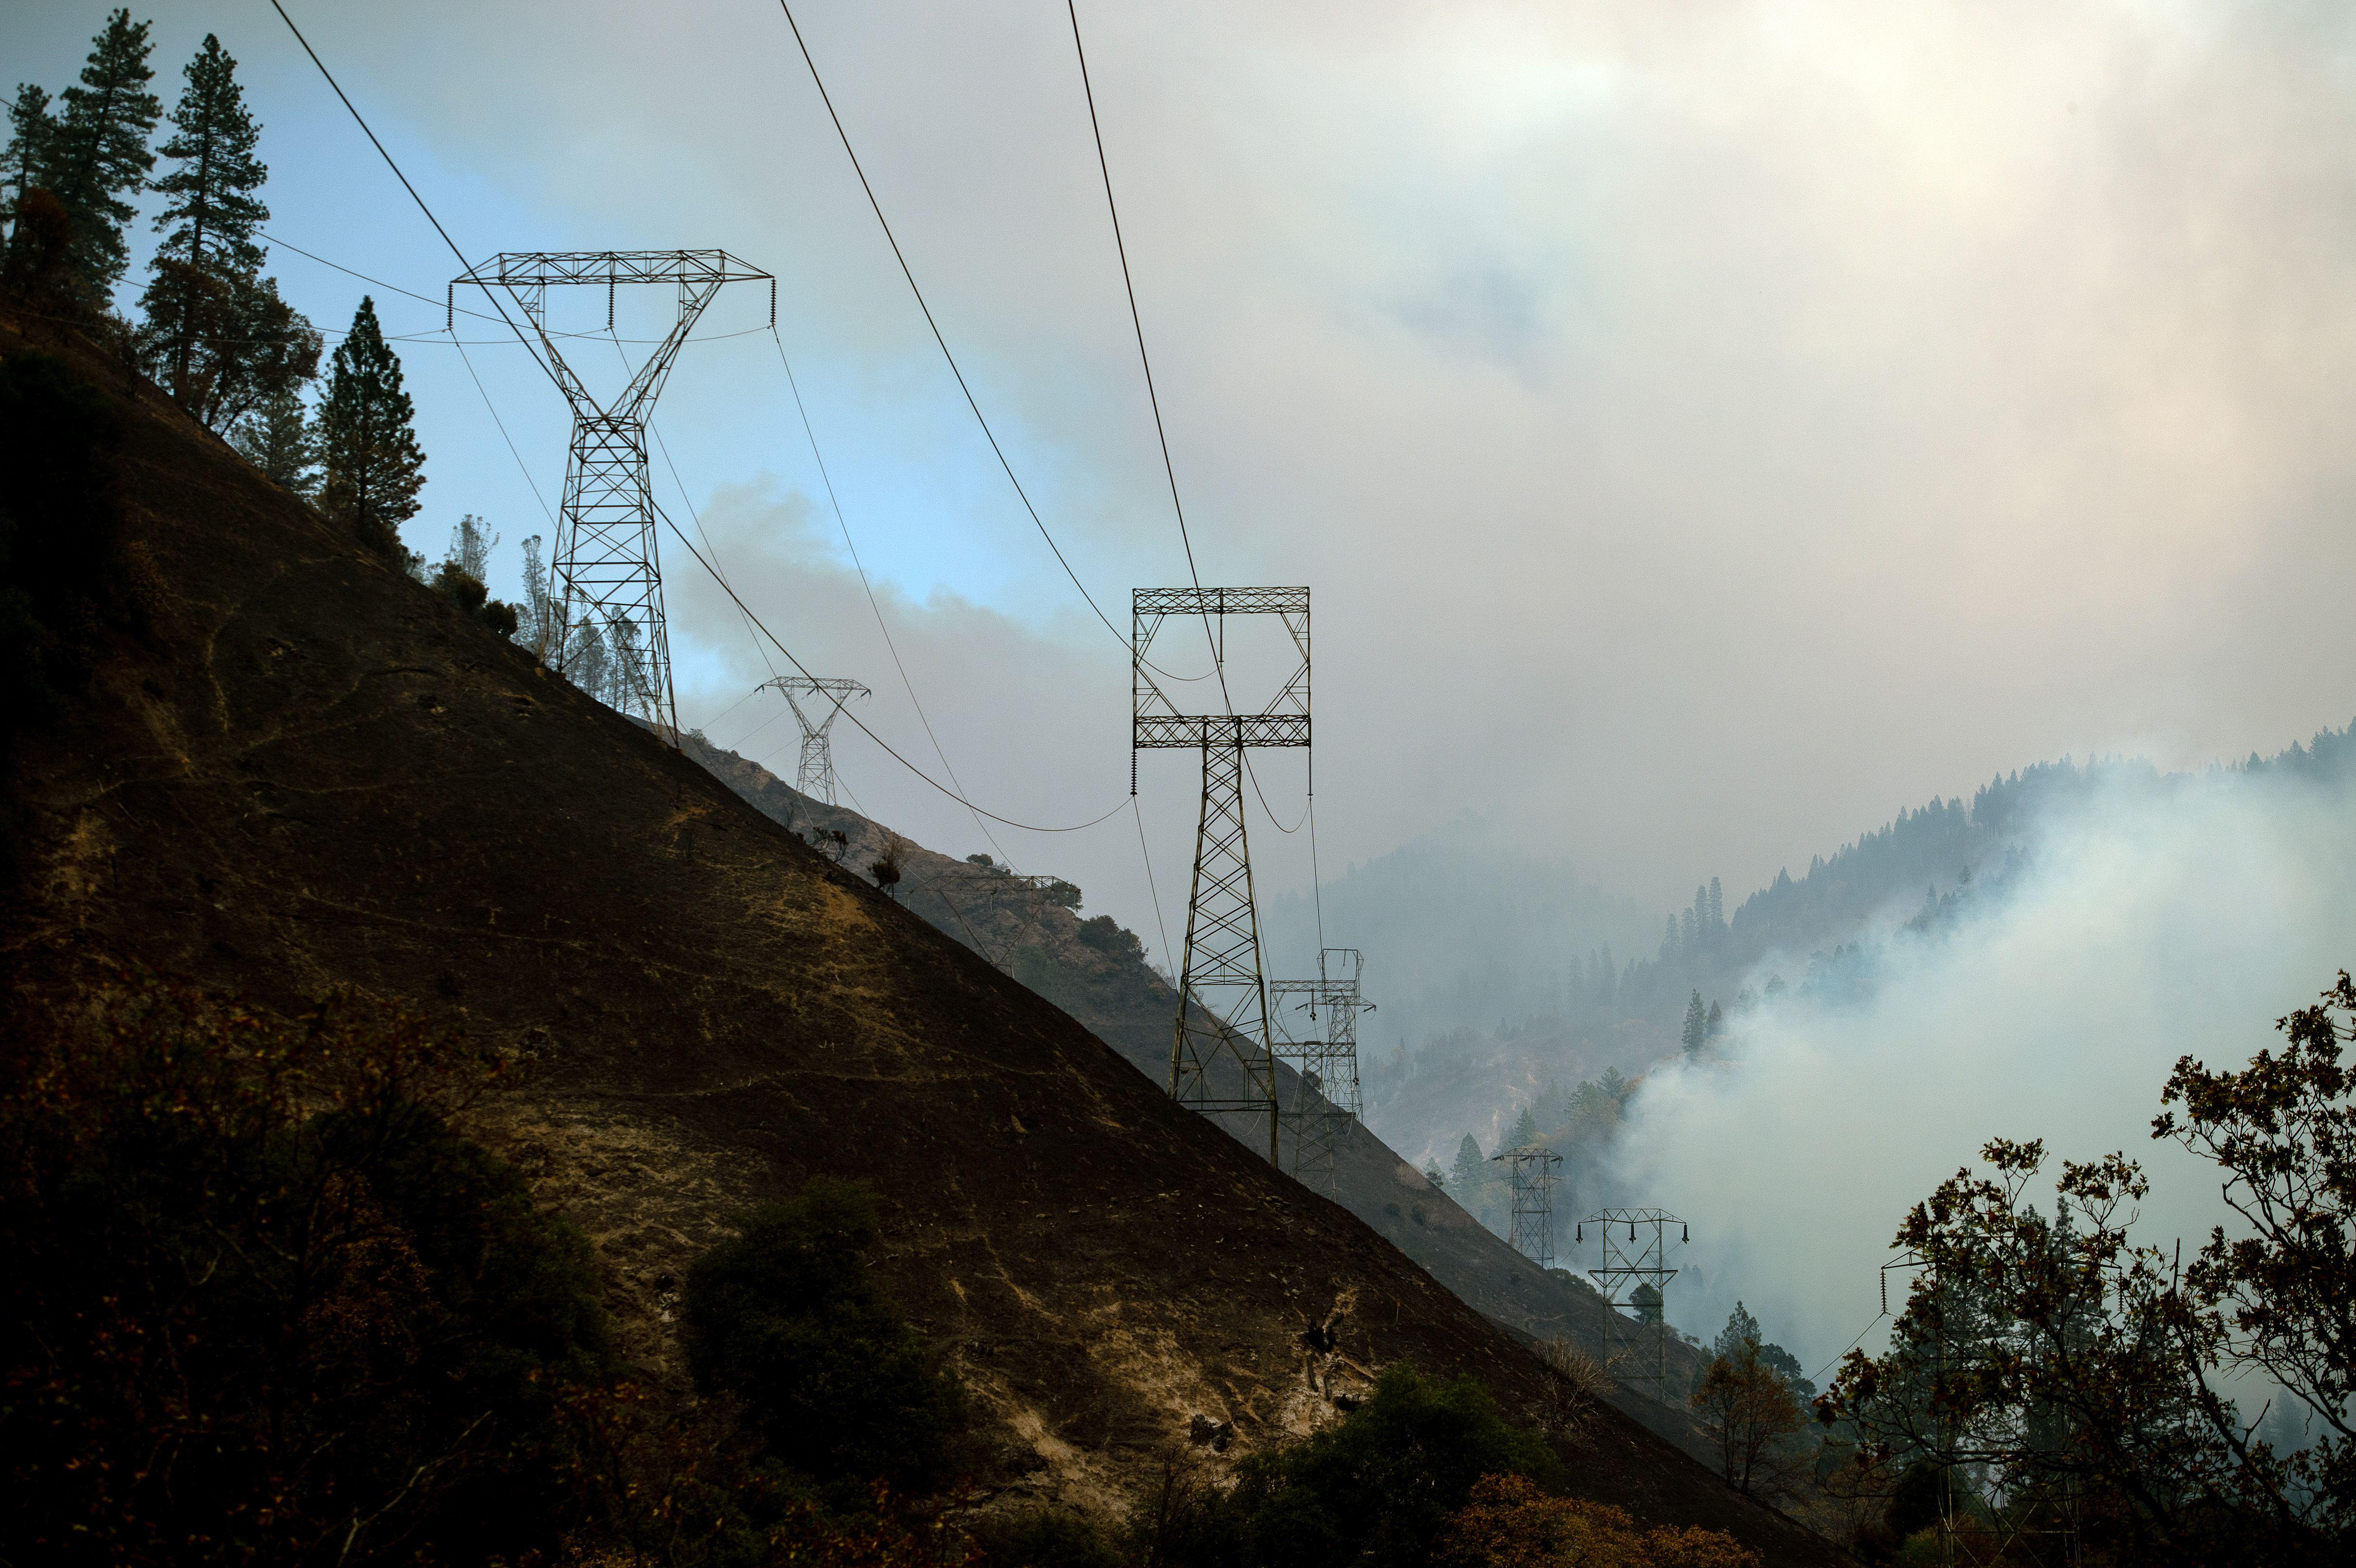 Smoky skies amid power lines in California.